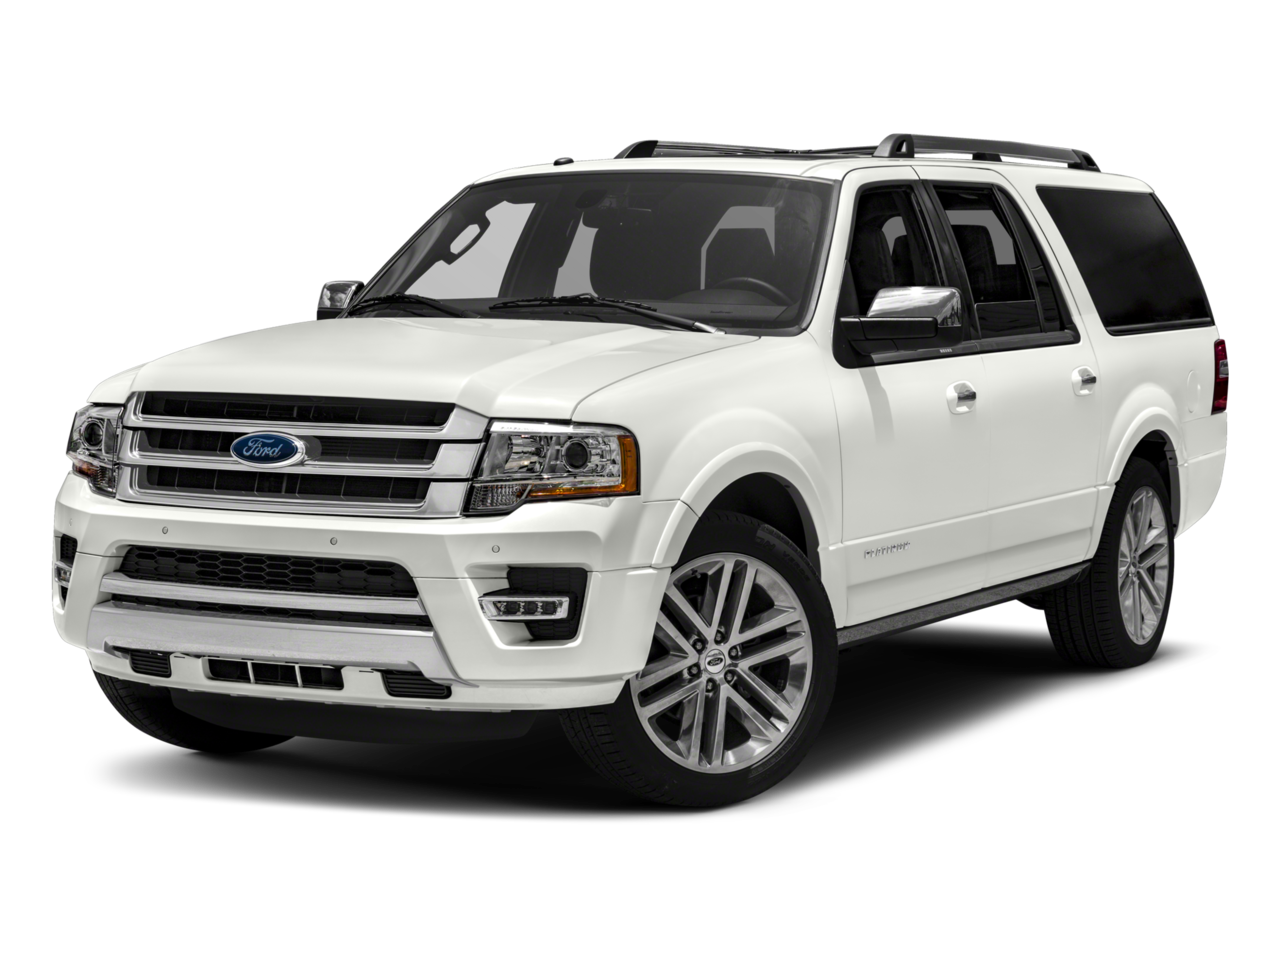 2017 Ford Expedition EL | Byron Center, MI